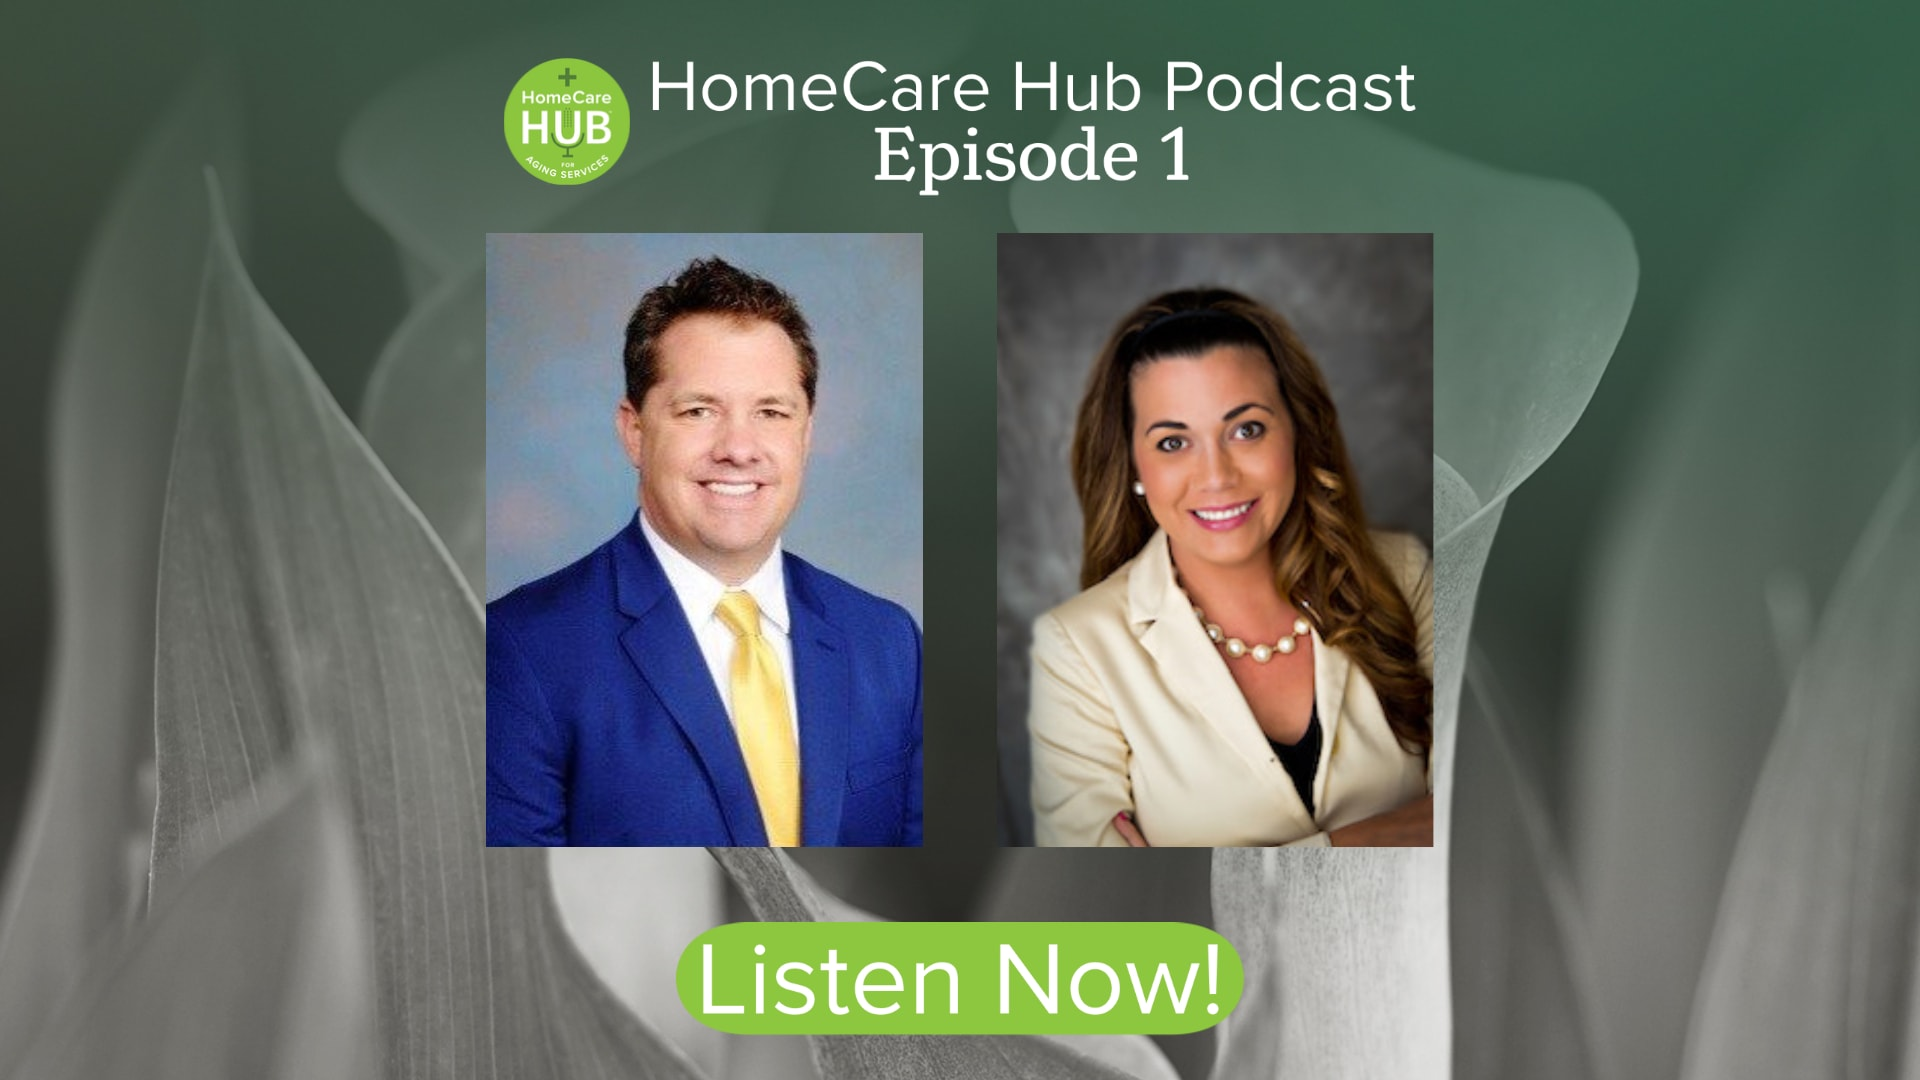 Mark Goetz and Sierra Goetz on the HomeCare Hub podcast